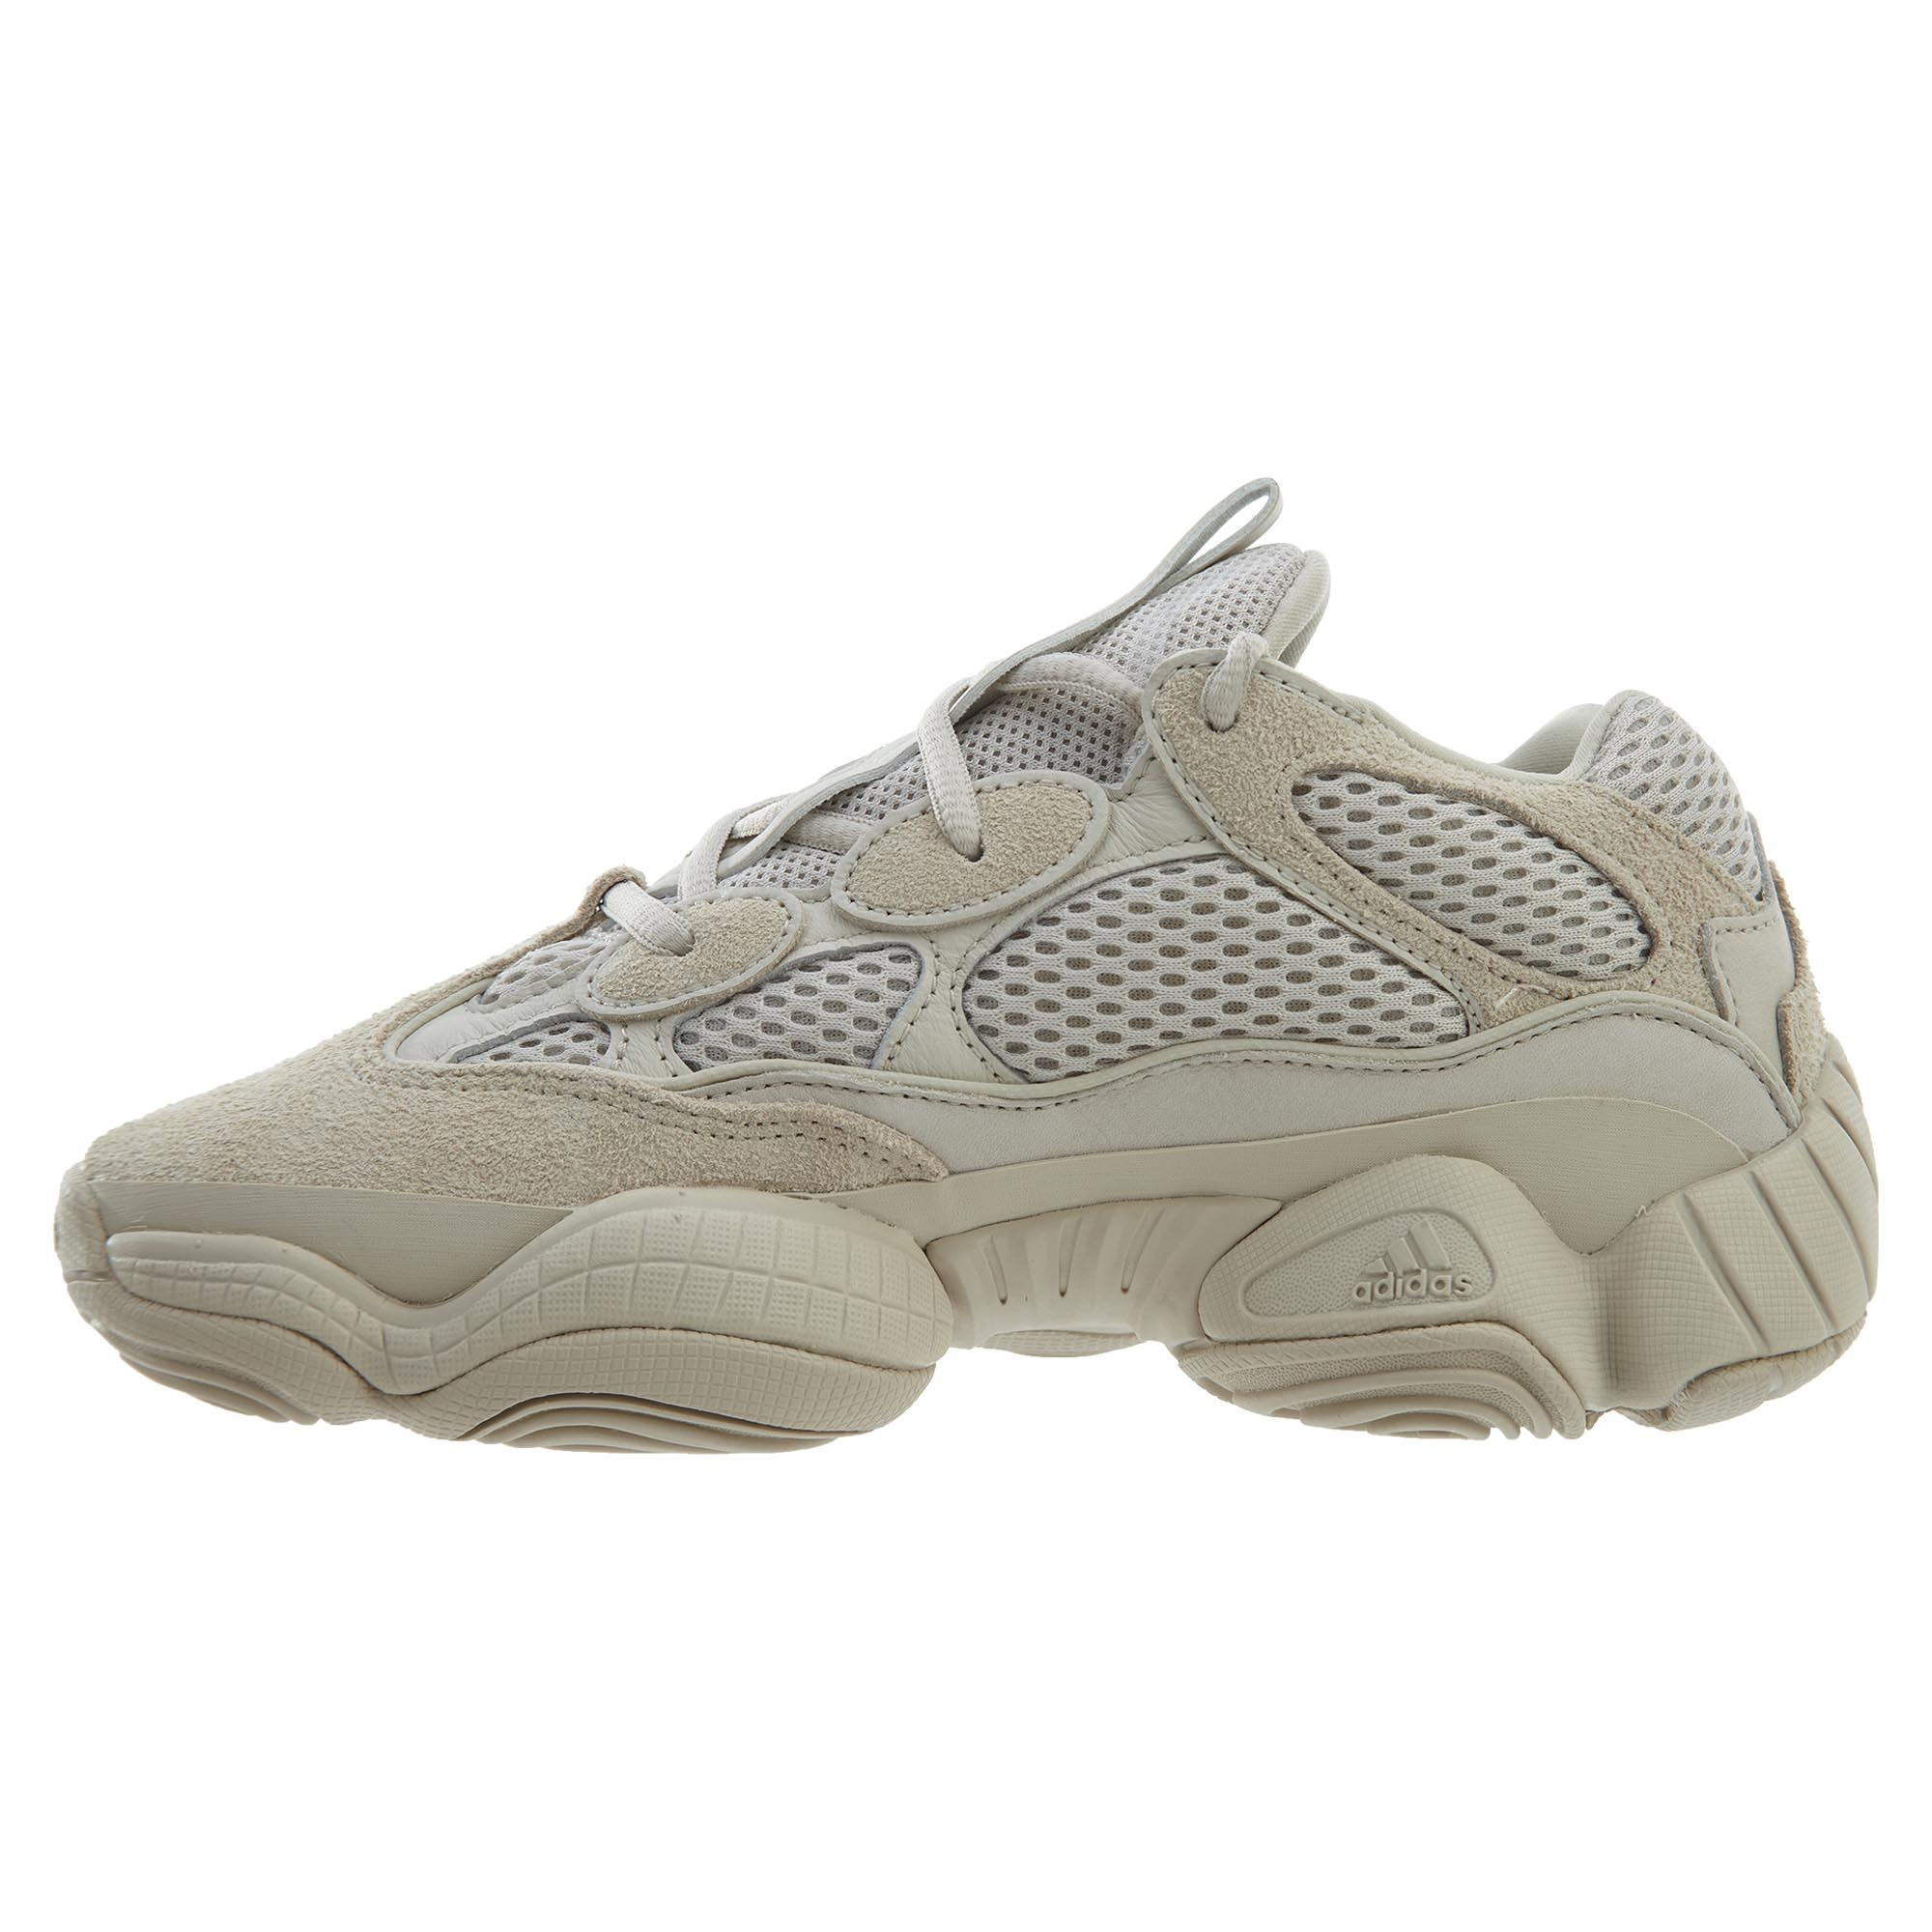 2bd2a7d01b4 Details about addias Mens Yeezy 500 Shoes DB298